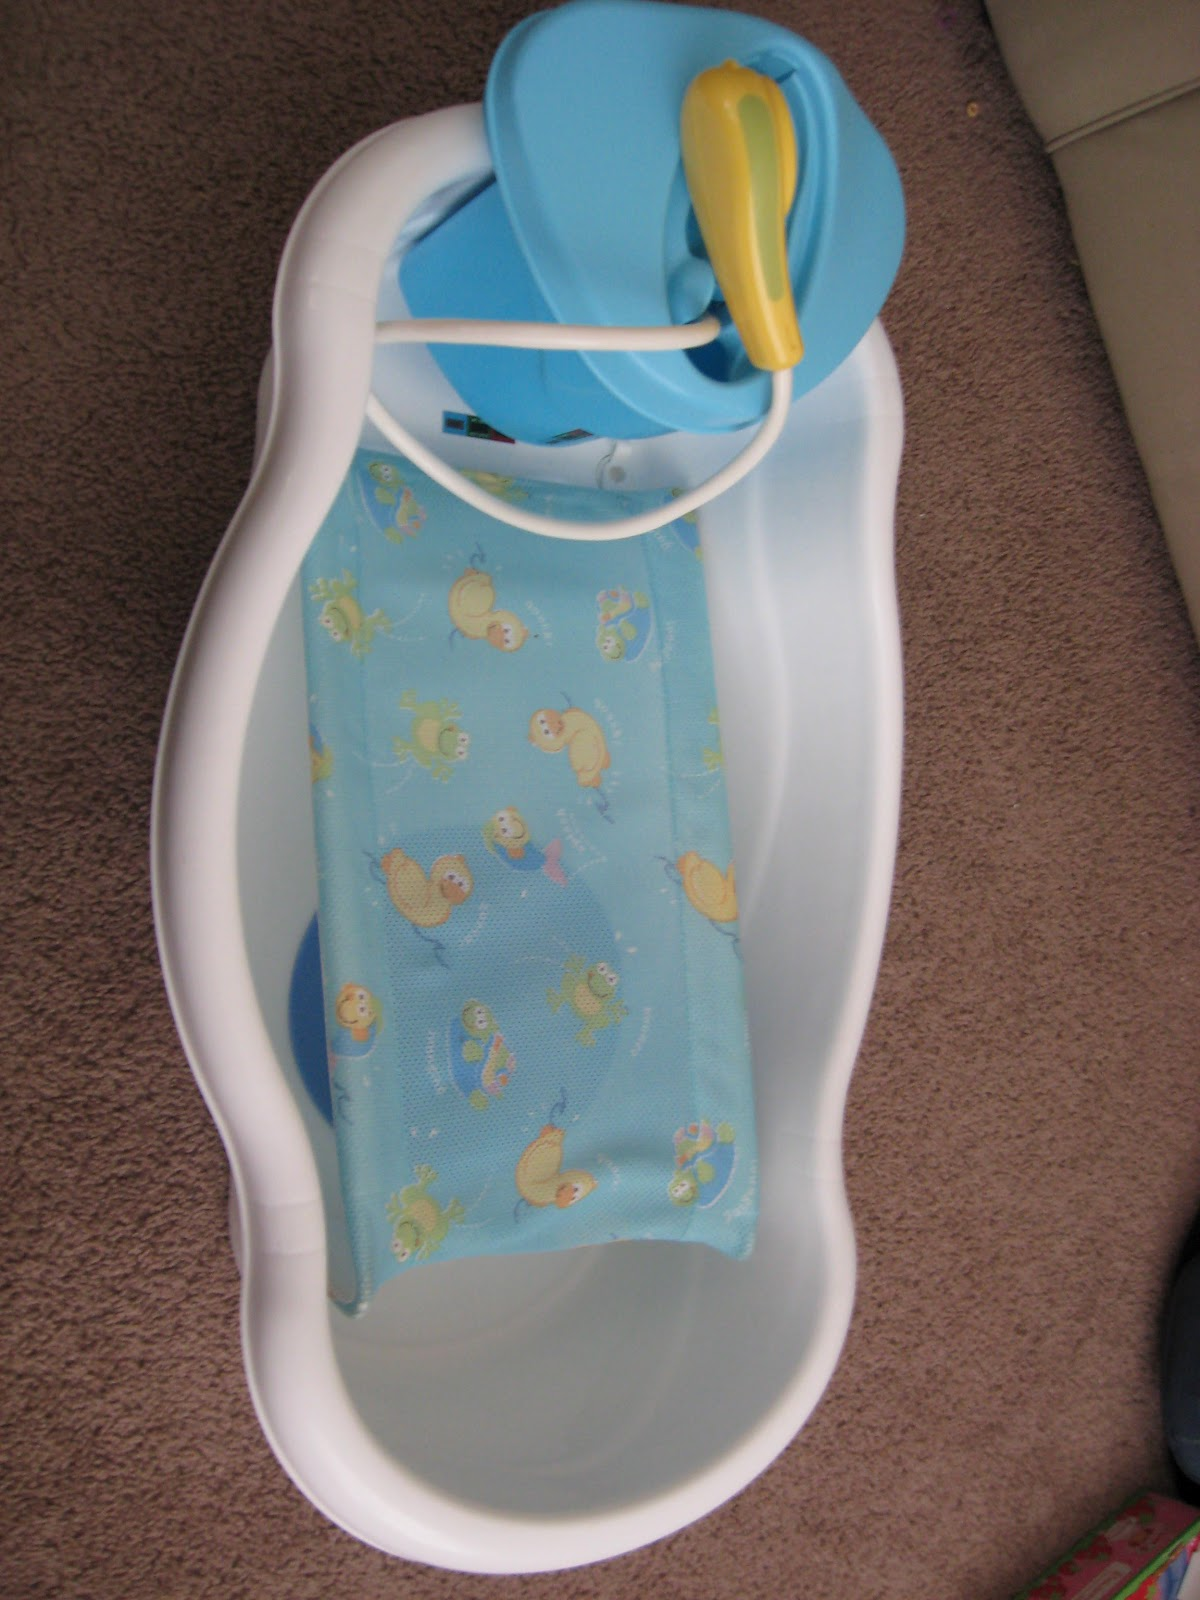 items for craigslist february 2012 summer infant newborn toddler bath center shower tub 10